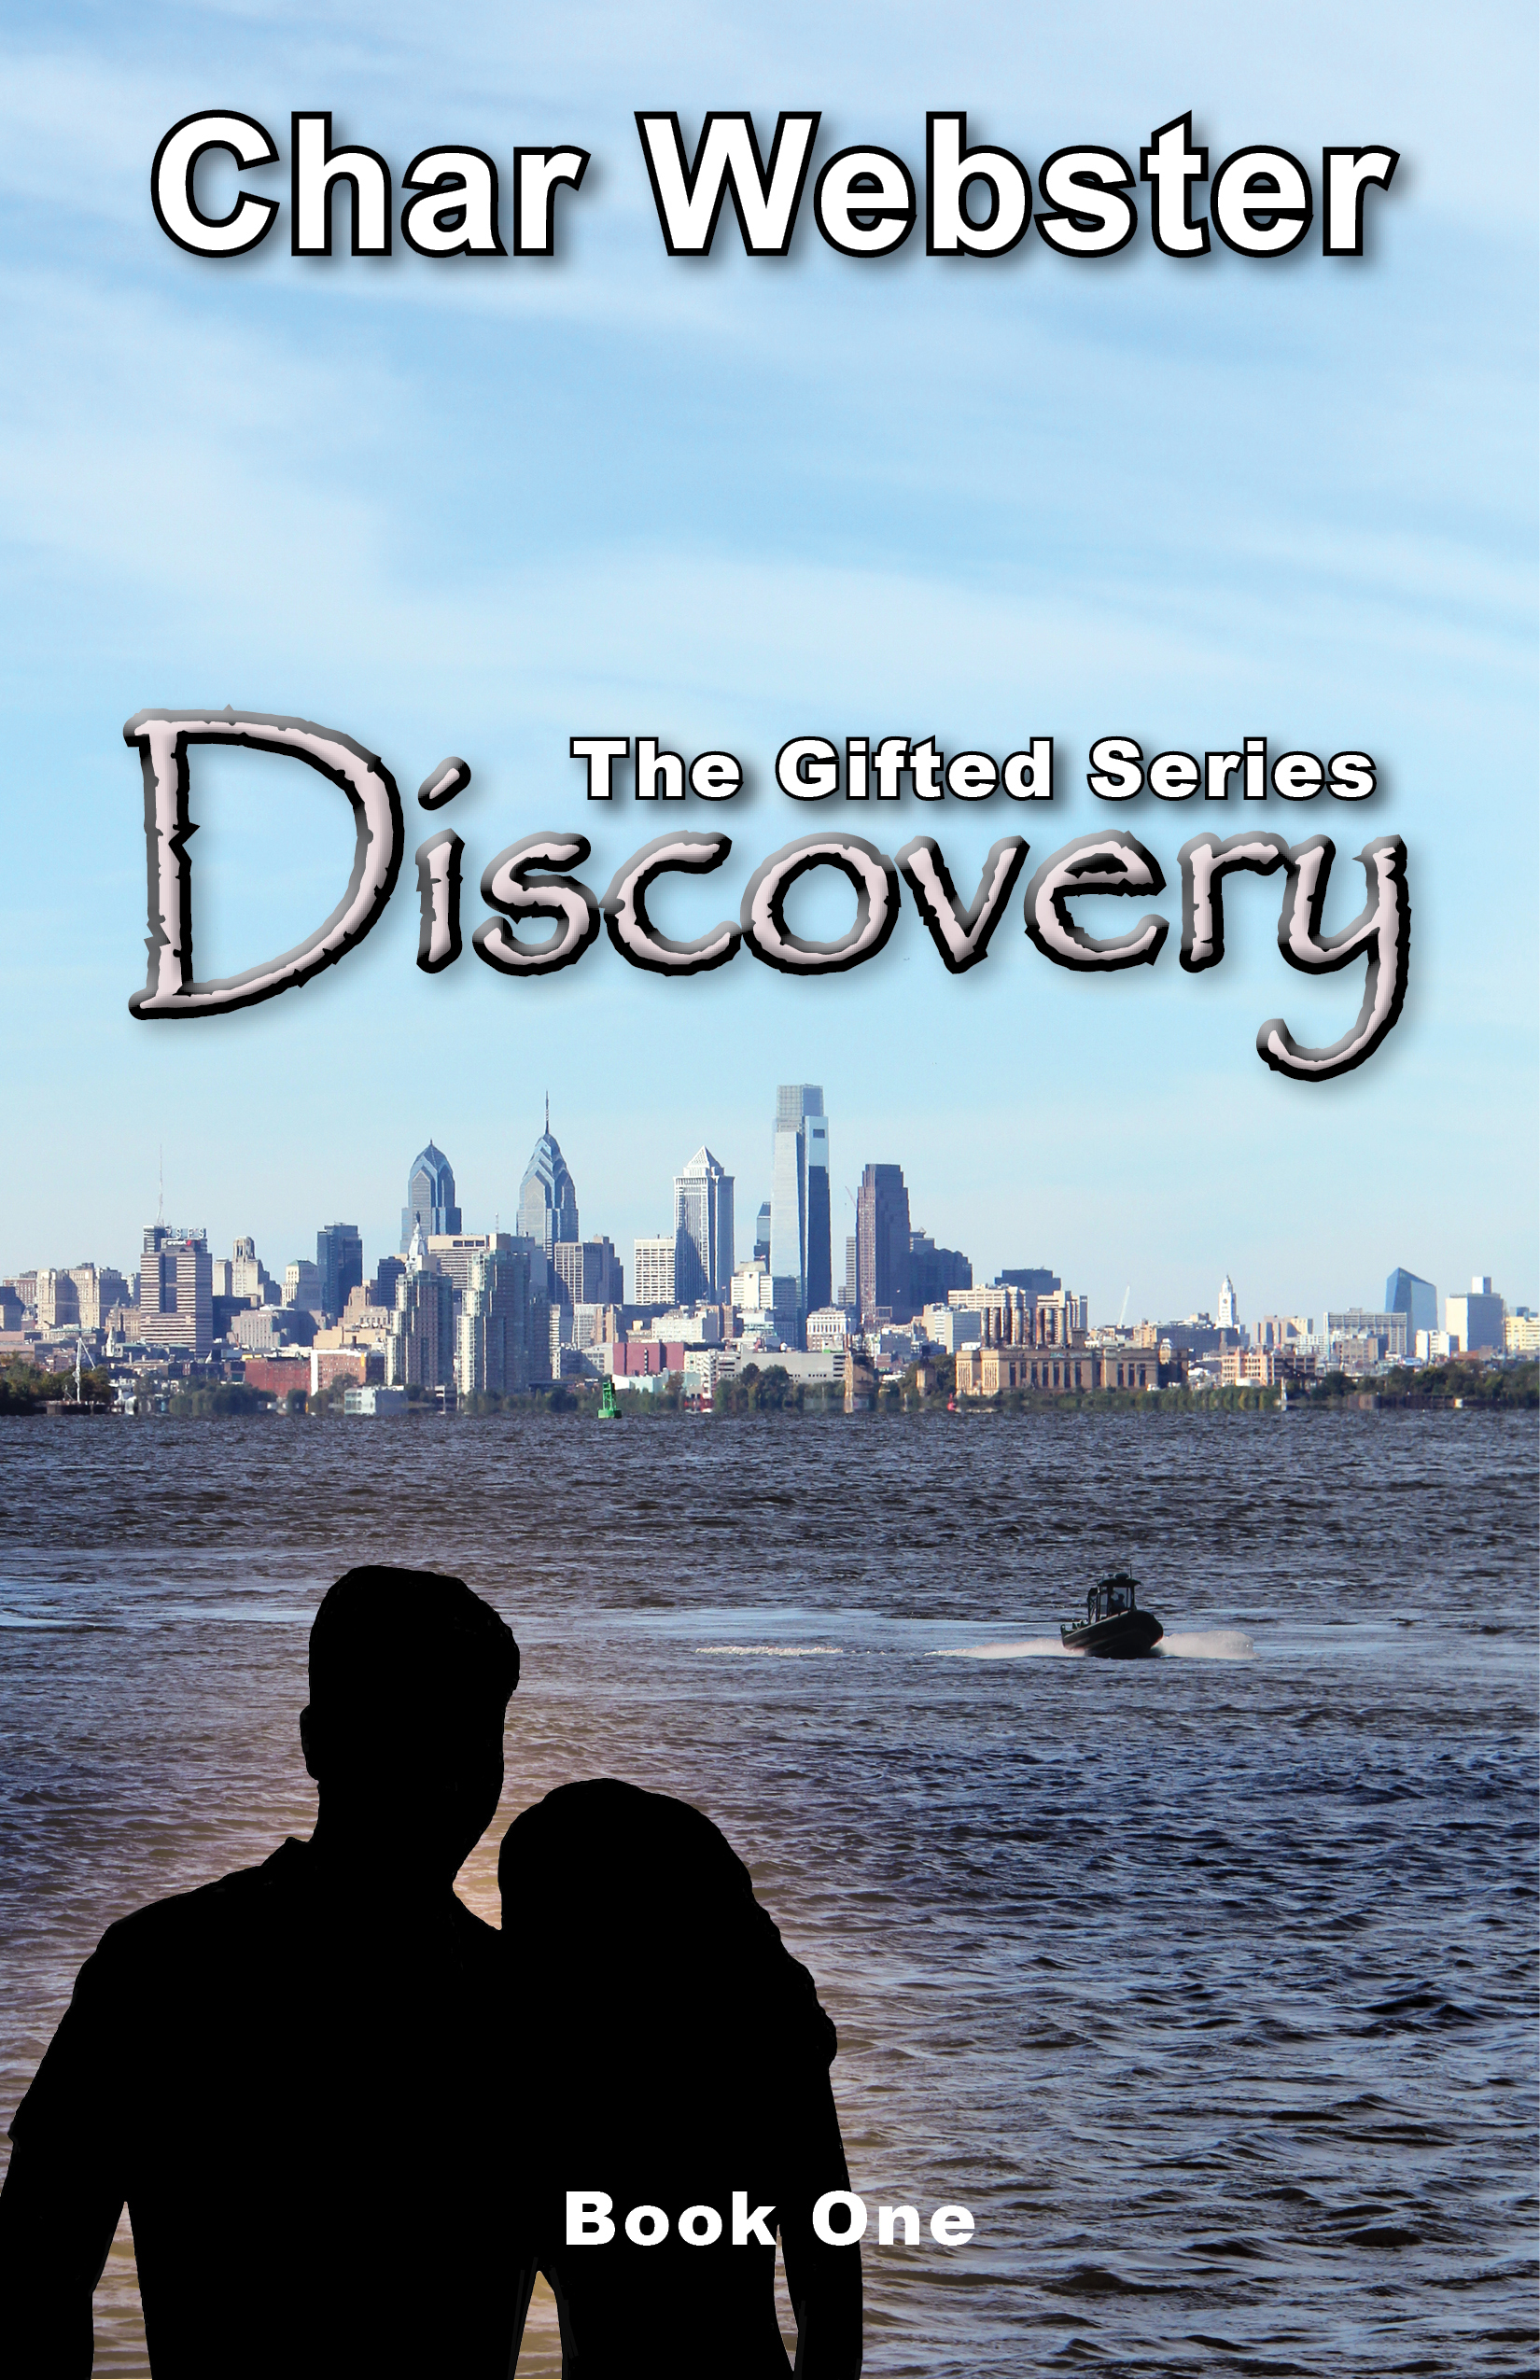 Discovery Char Webster